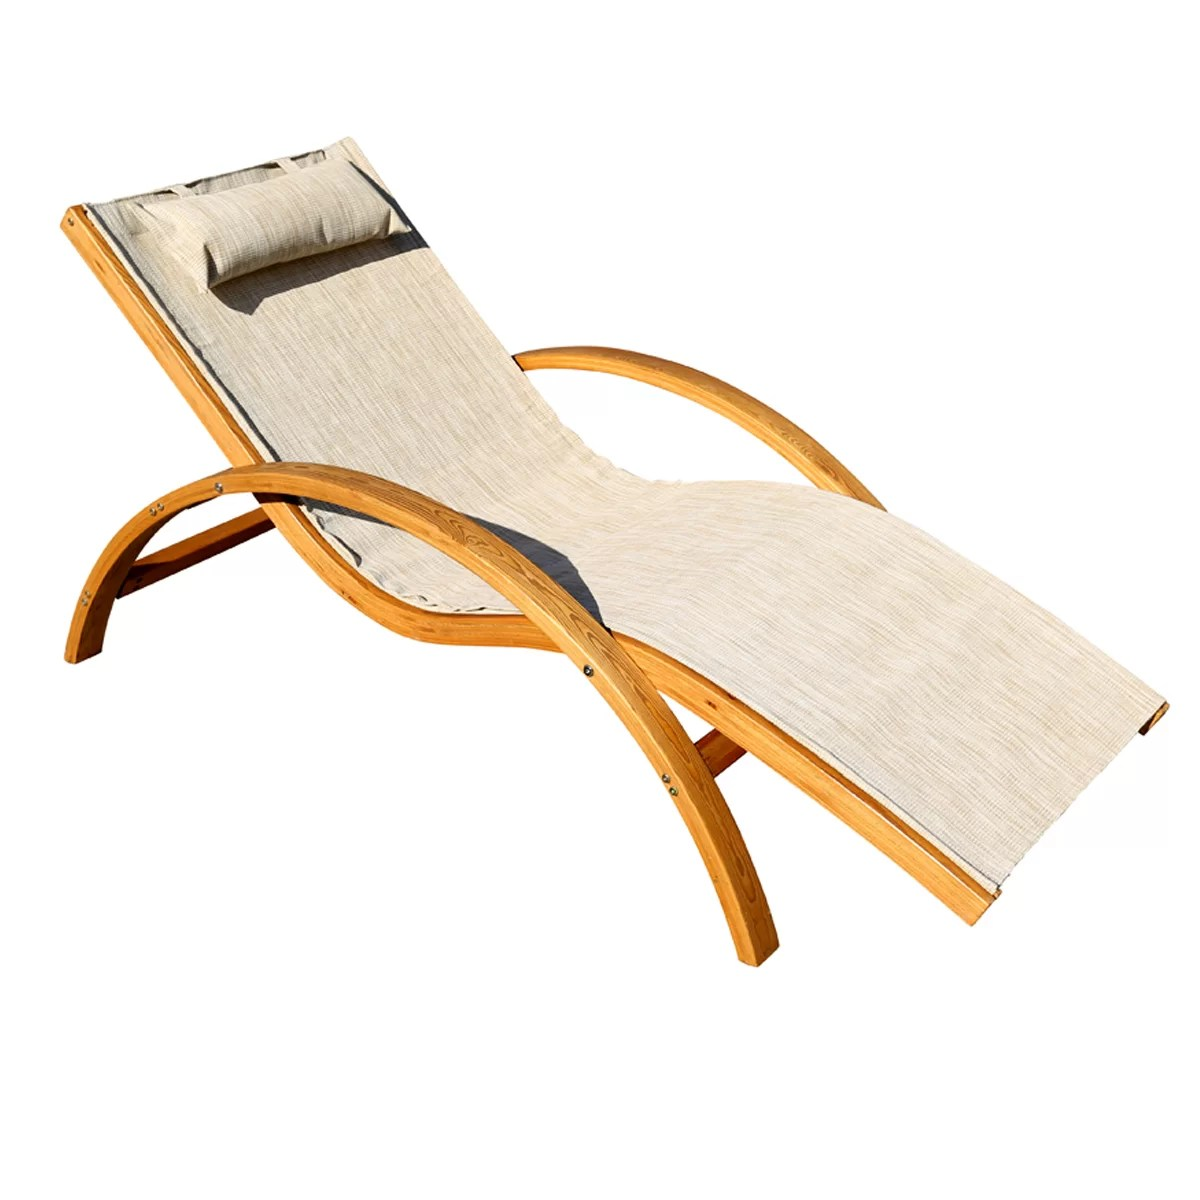 Sling Chaise Lounge Chair Leisure Season Sling Lounge Chair With Cushion And Reviews